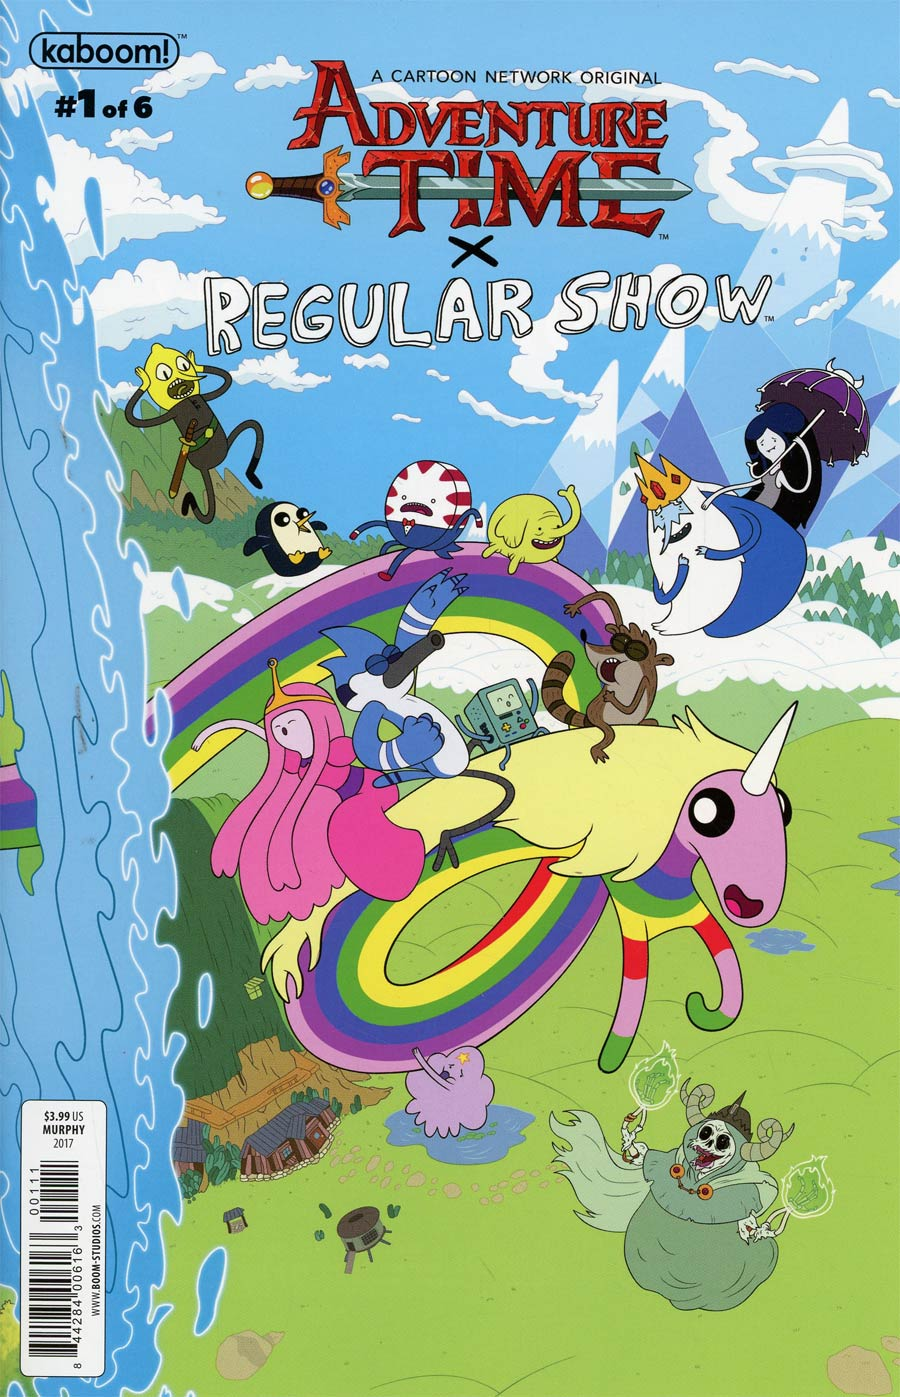 Cover to 'Adventure Time/Regular Show' #1. Art by Mattia Di Meo and Joana Lafuente/BOOM! Studios